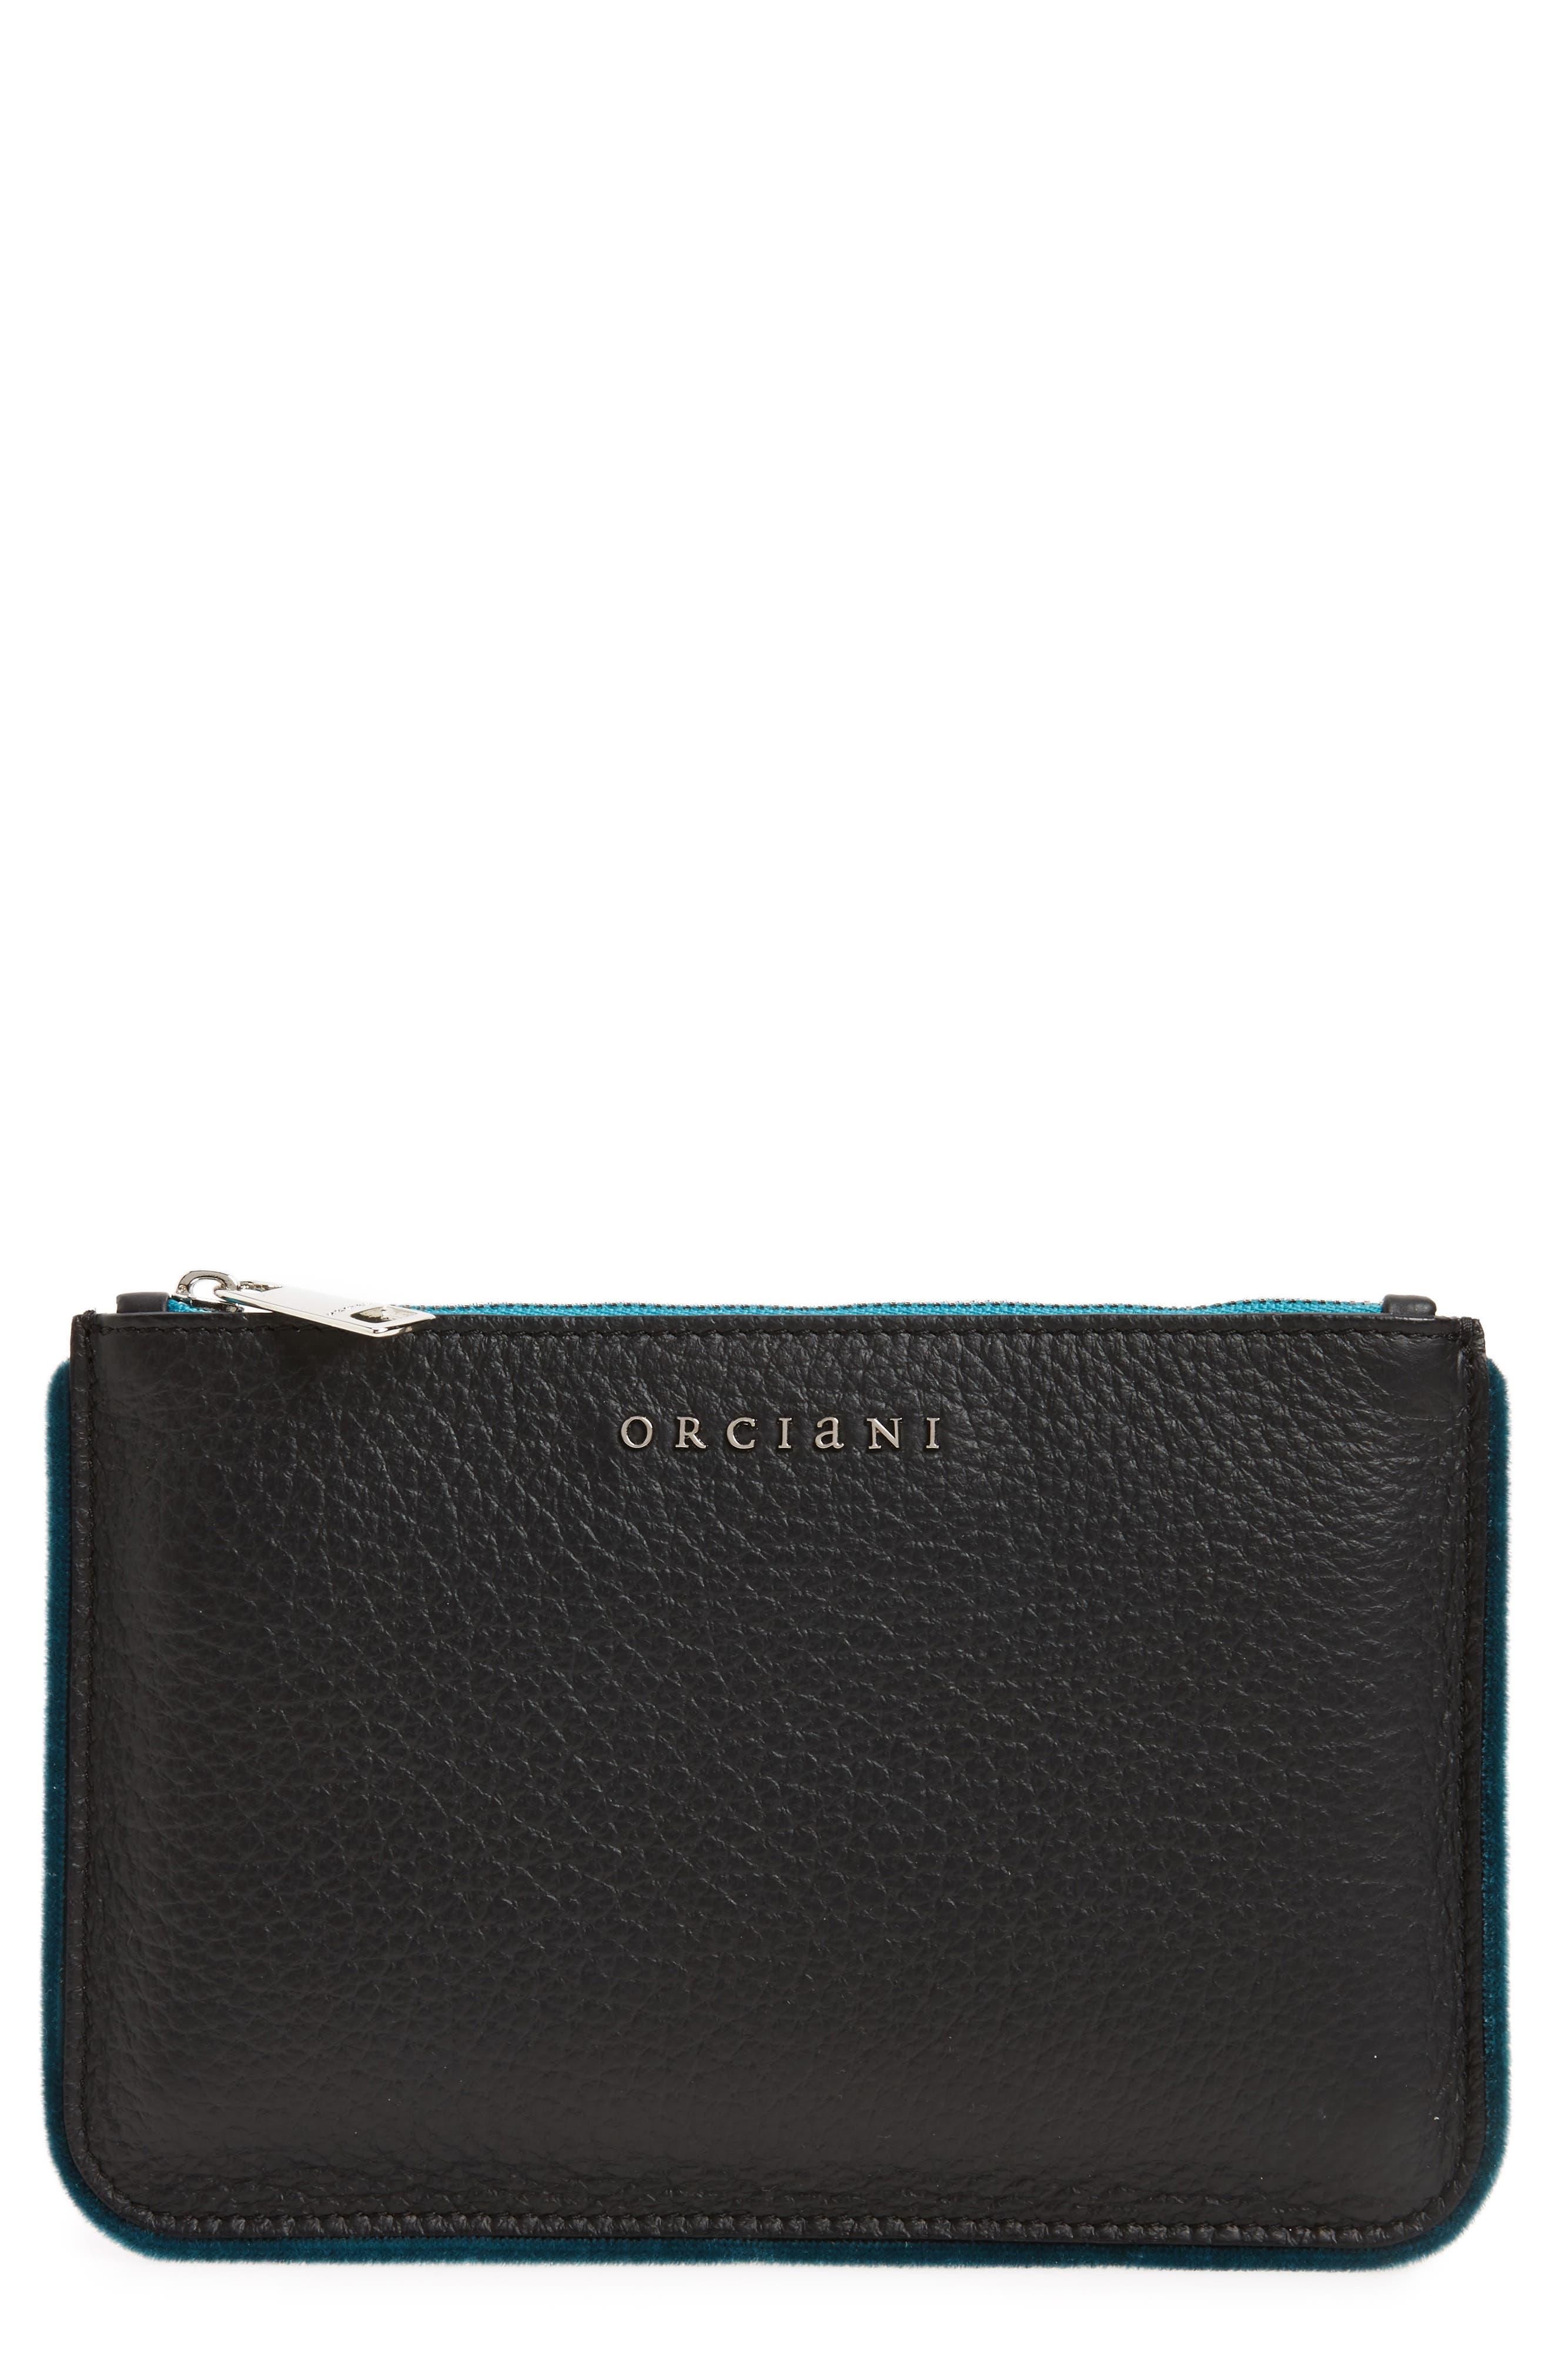 Main Image - Orciani Large Soft Line Velvet Trim Calfskin Leather Pouch